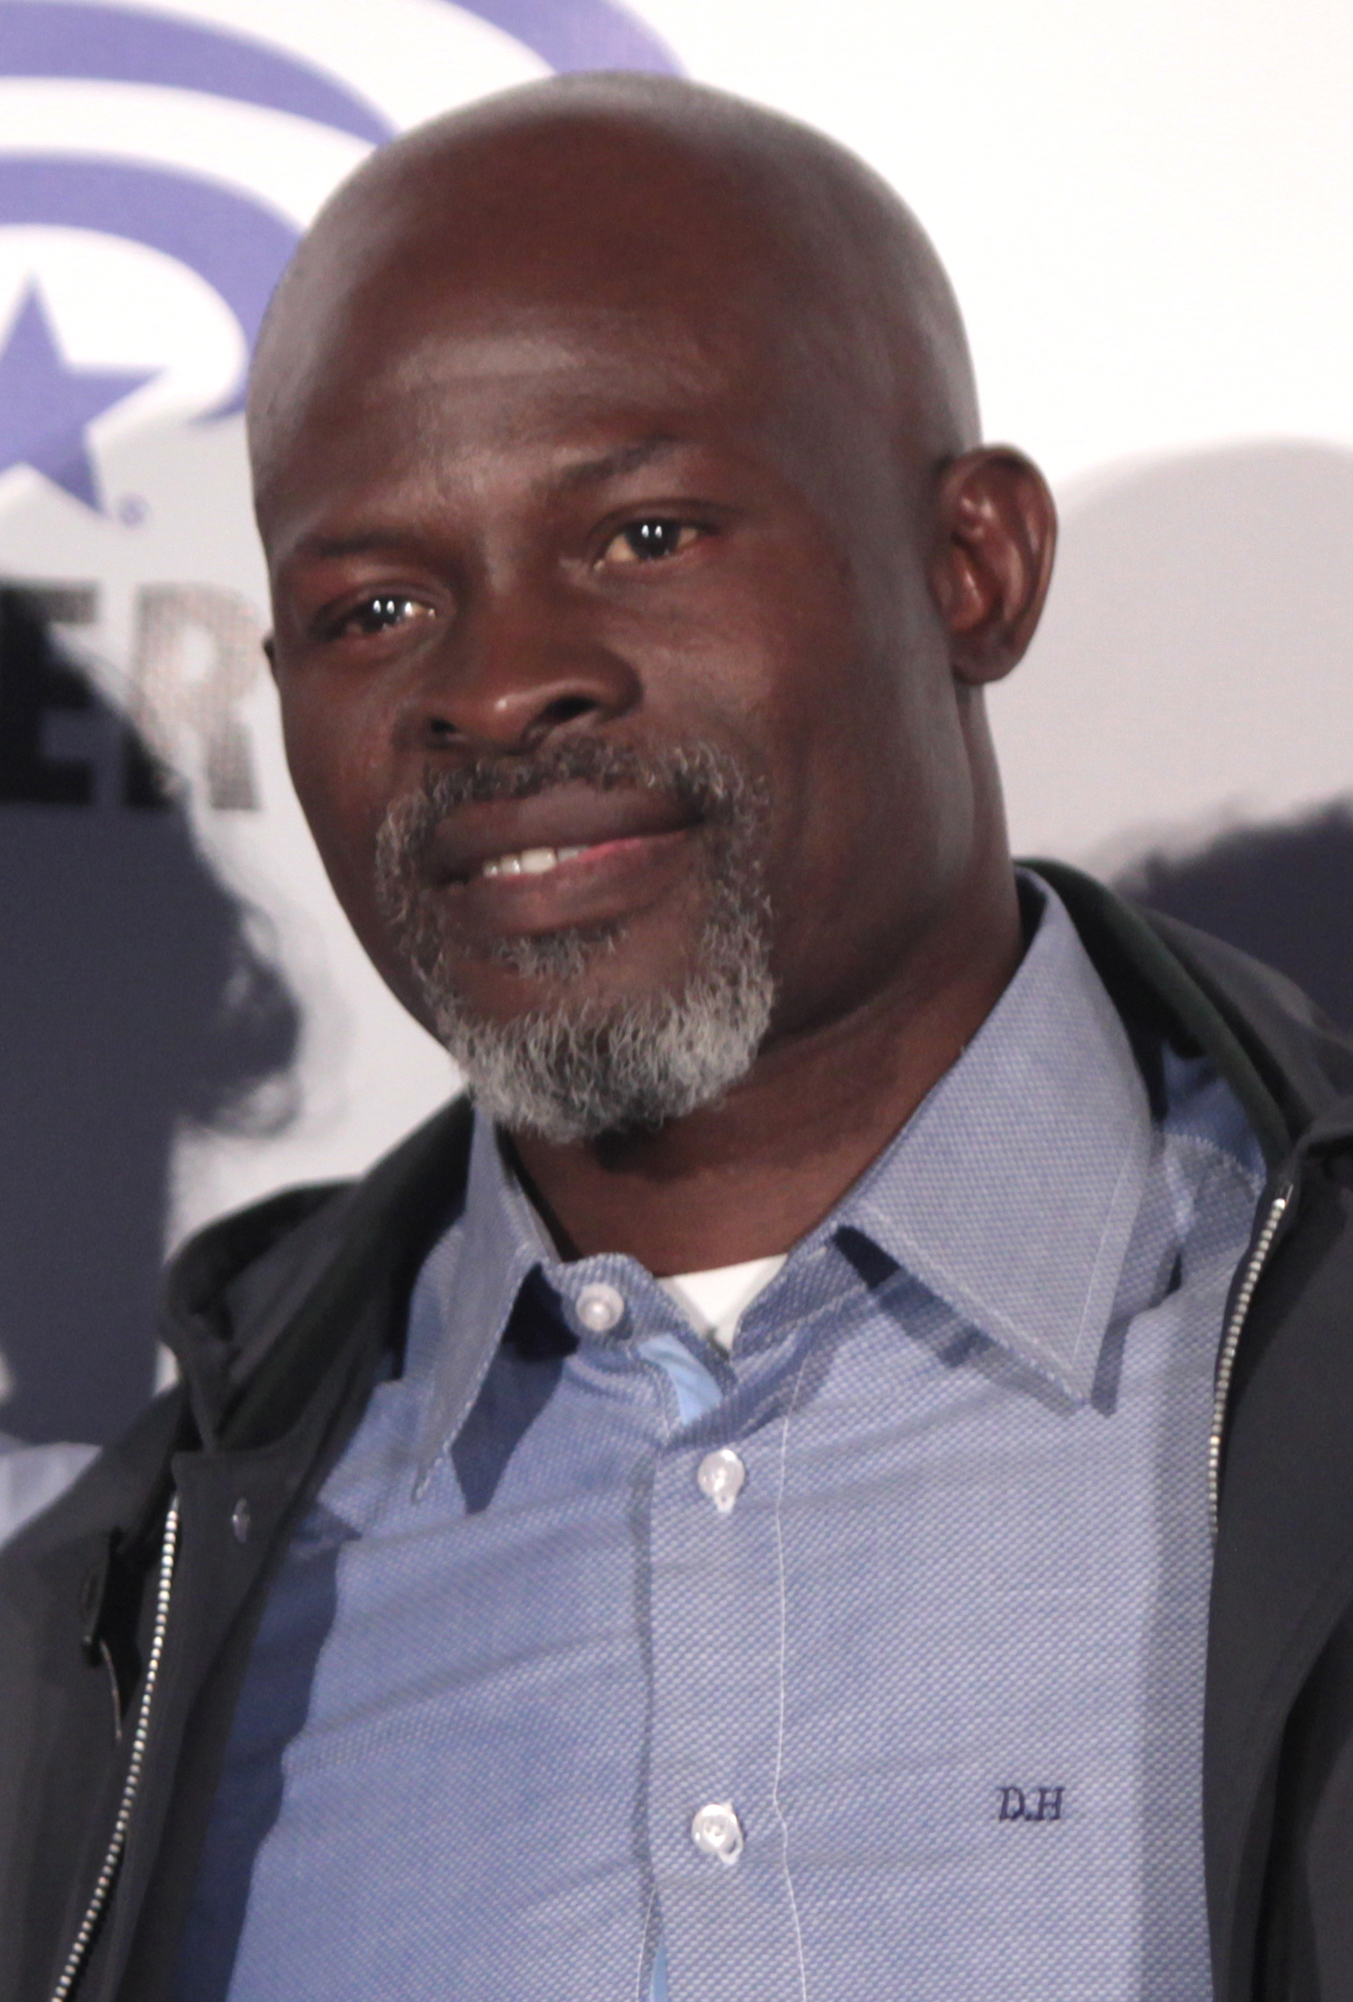 Hounsou at the 2016 [[WonderCon]]